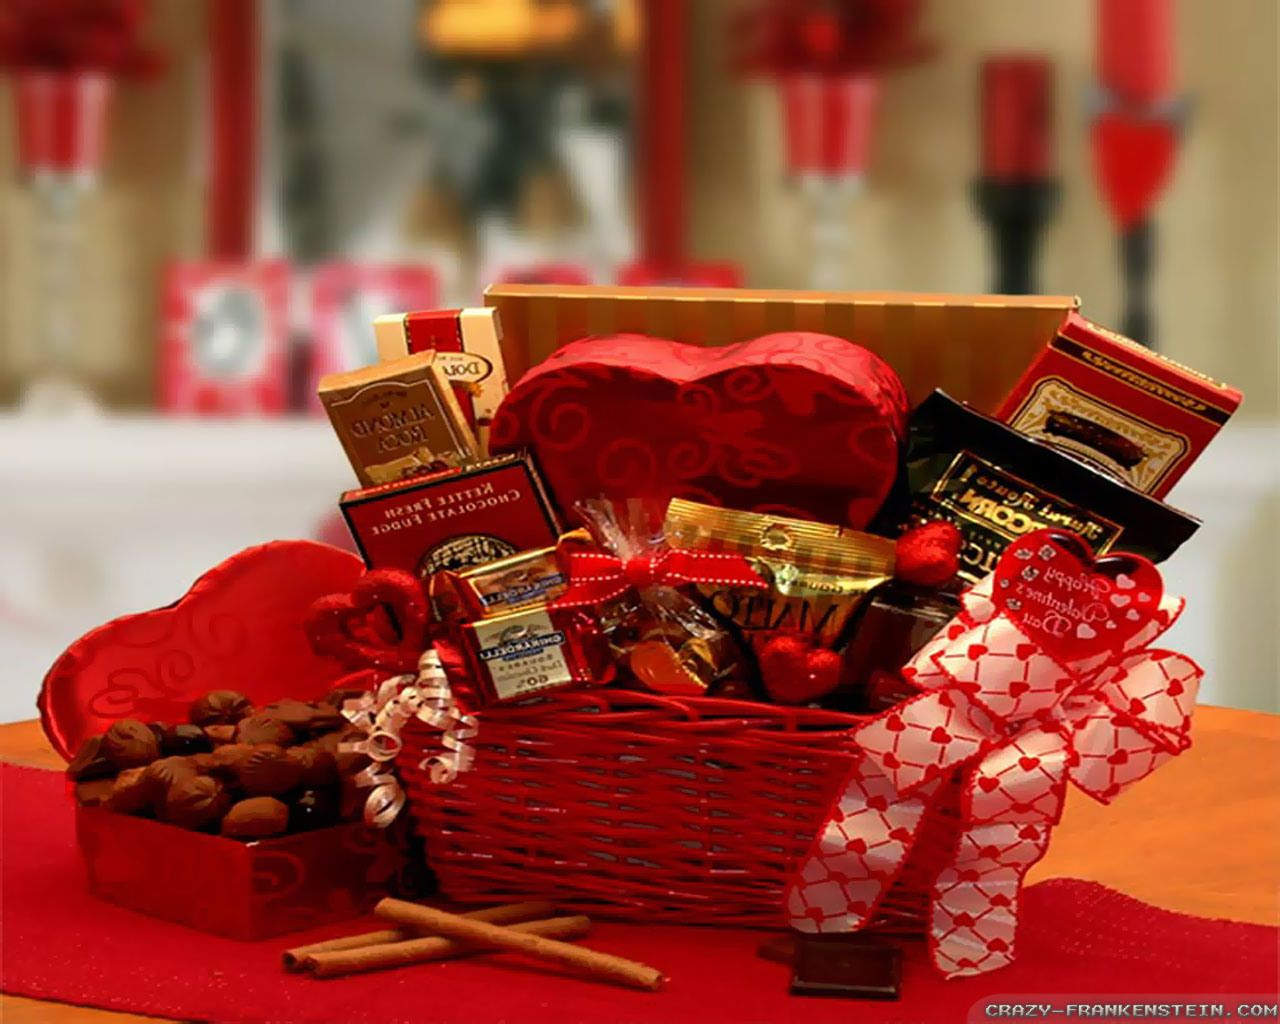 Valentine's day gift ideas for him newly dating